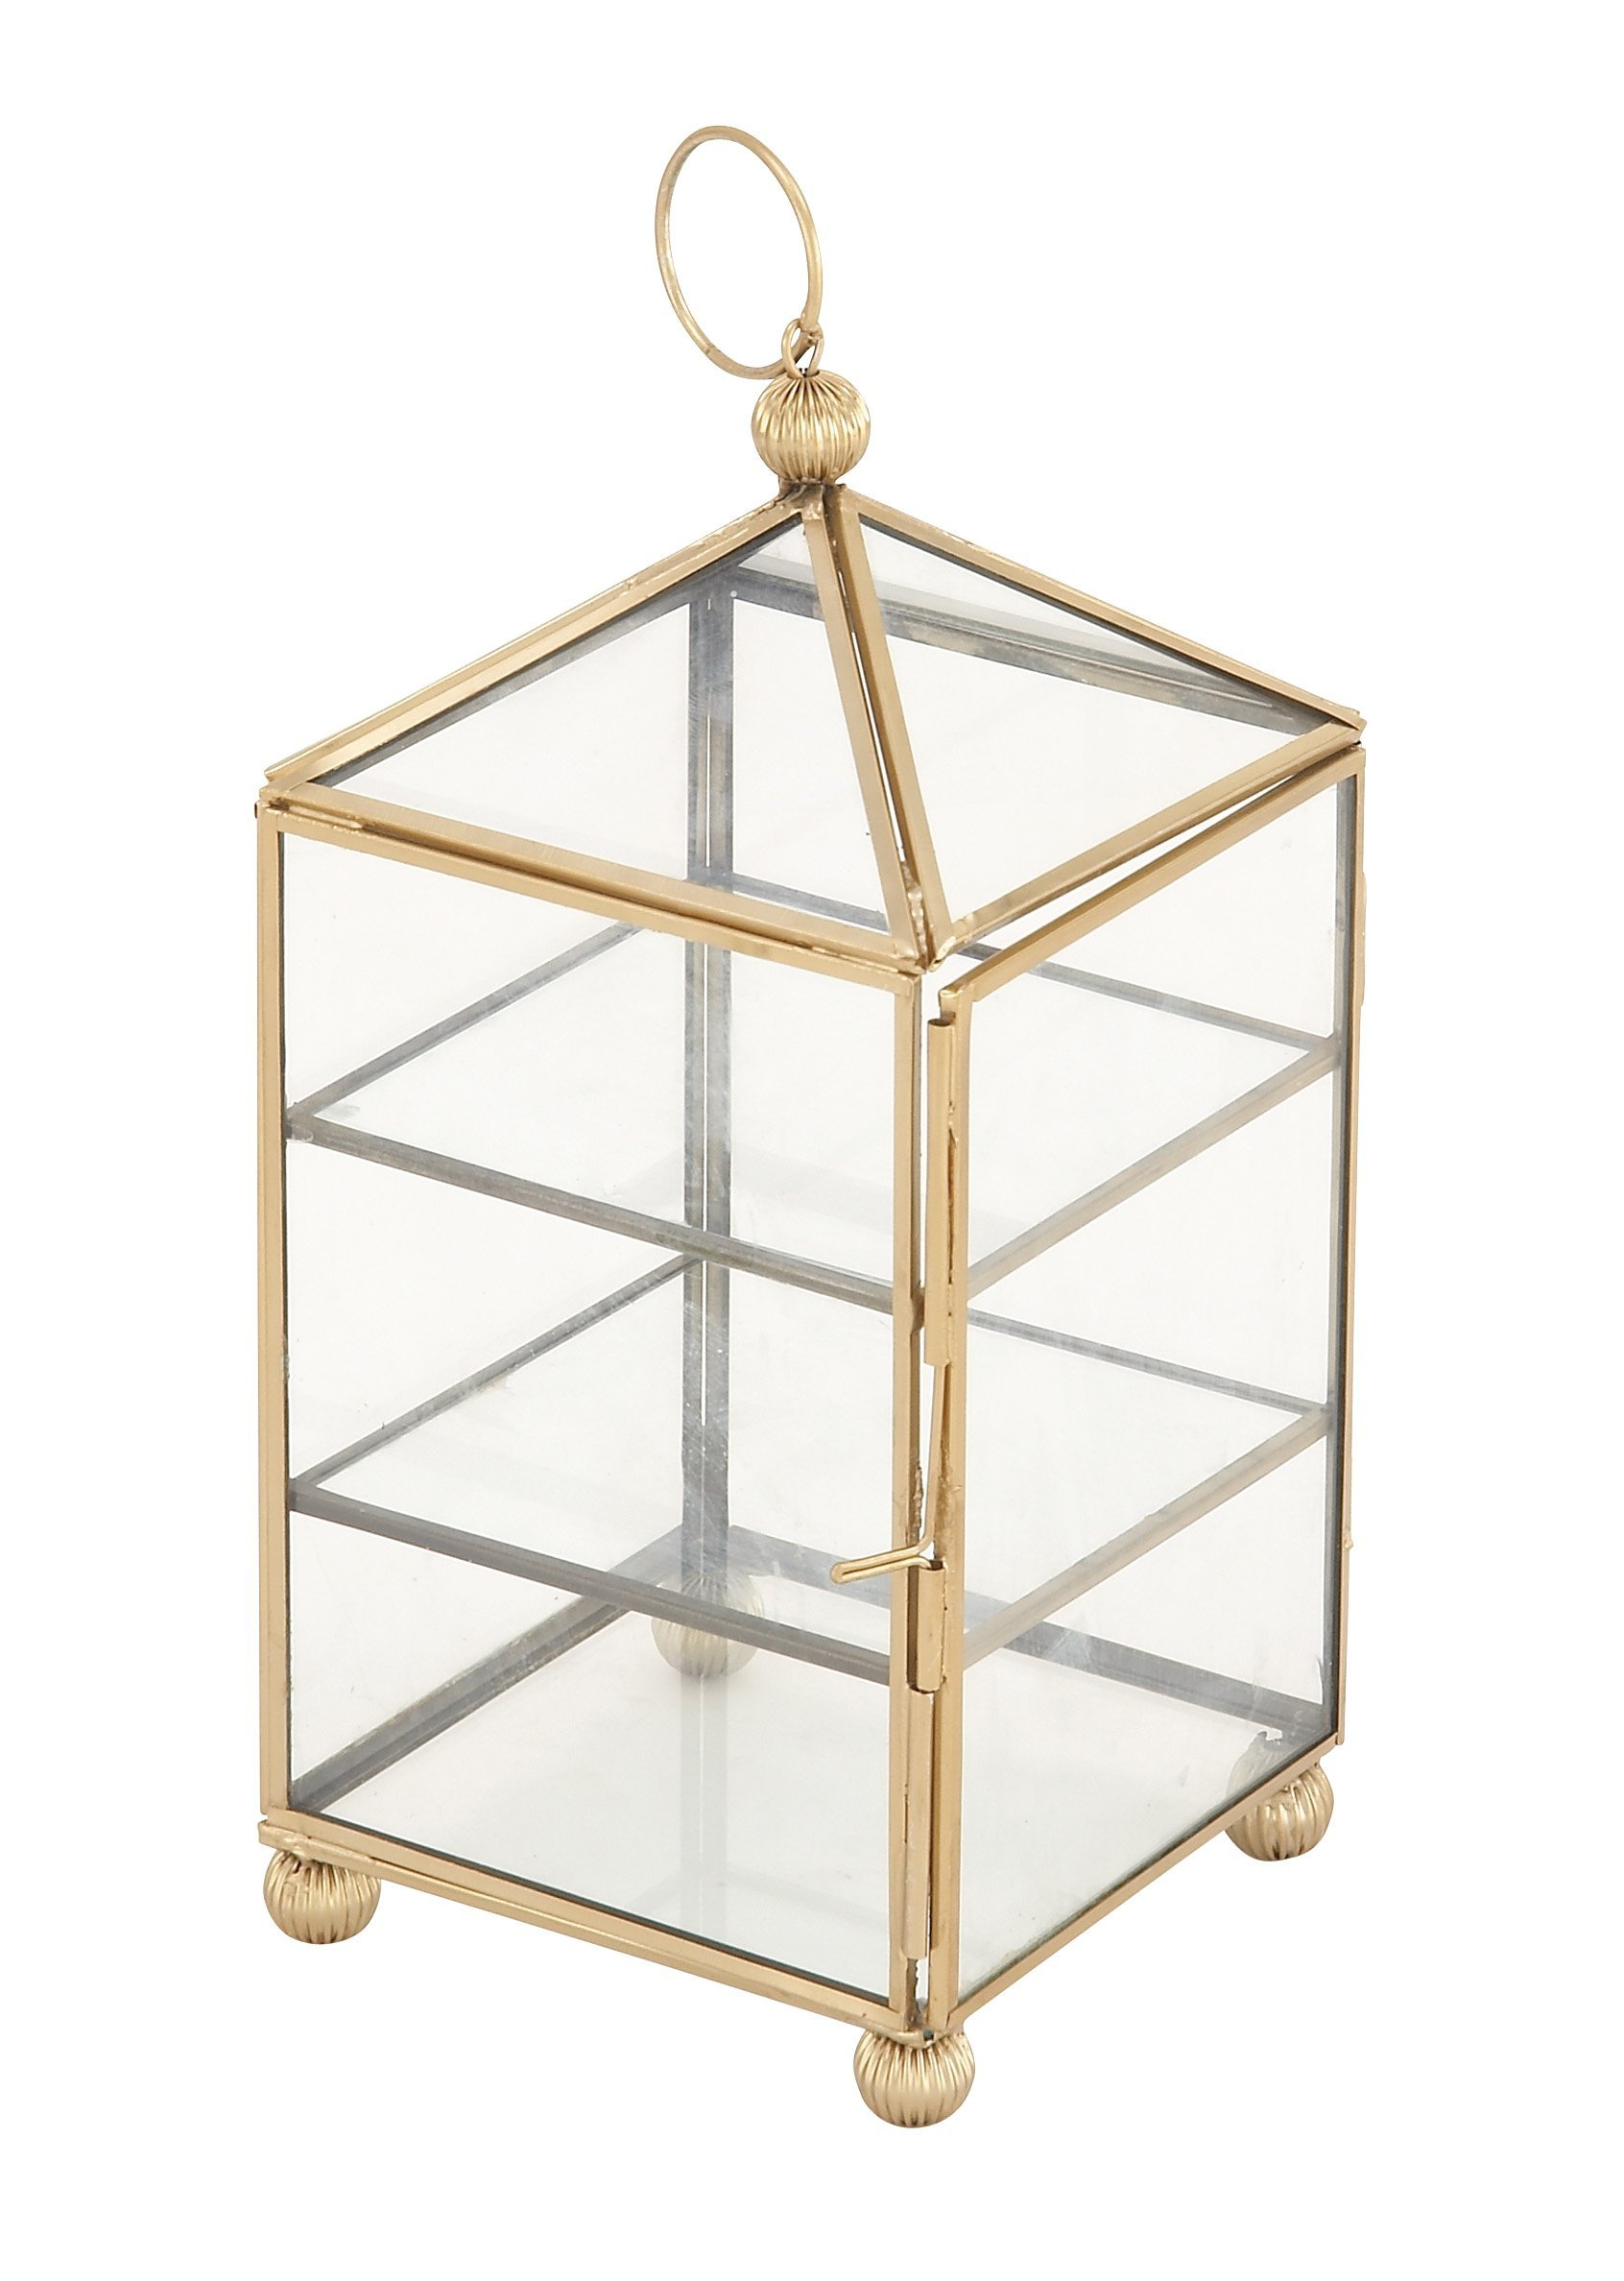 Deco 79 54290 Pyramid-Shaped Iron and Glass Jewelry Box, 11'' x 5'', Gold